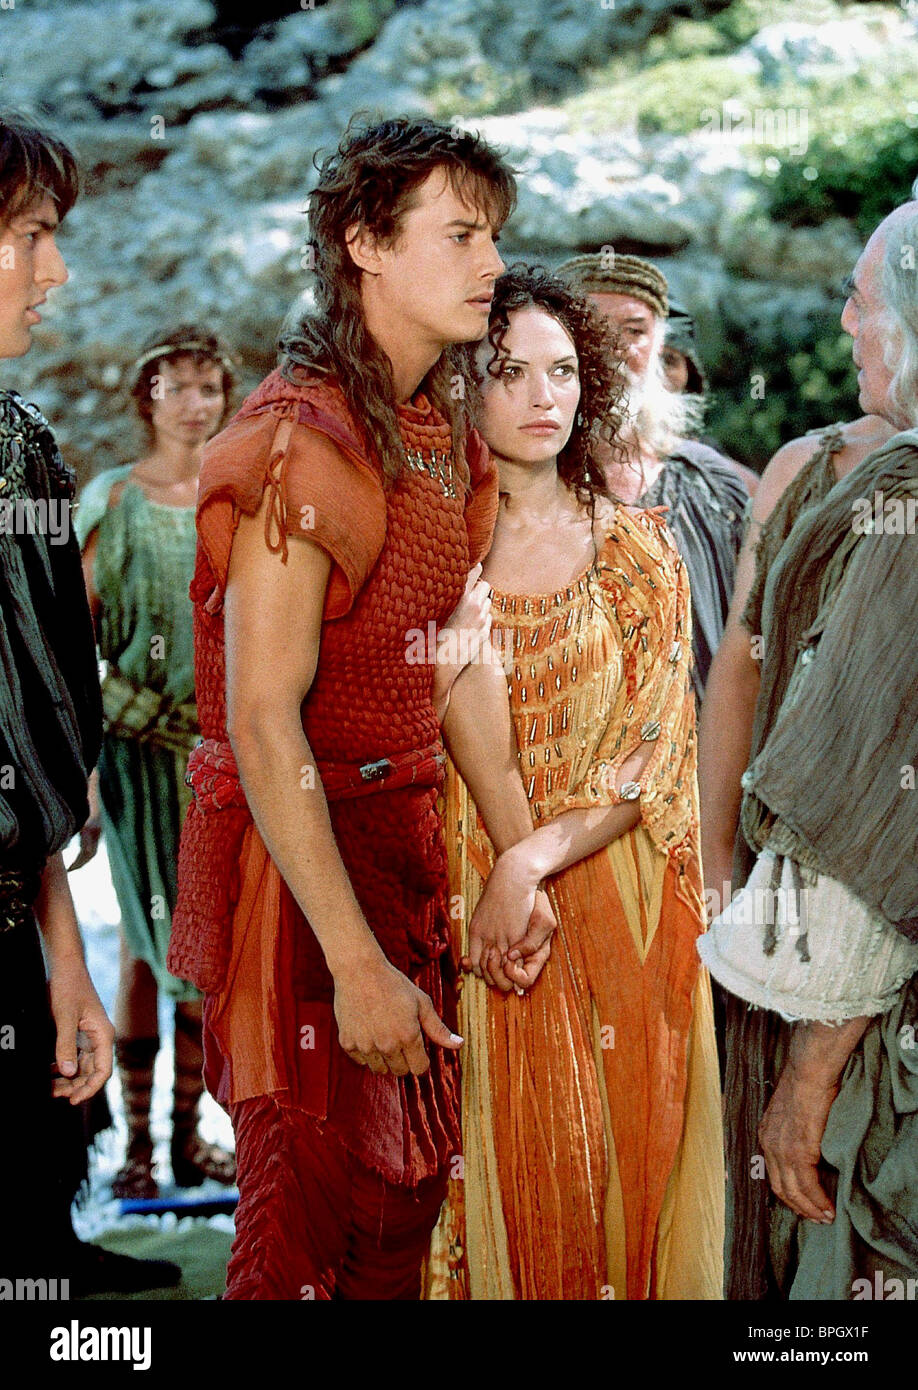 jason and the argonauts medea As a princess of colchis, she betrayed her father aeëtes to help the handsome  stranger jason win the famous golden fleece, then murdered.